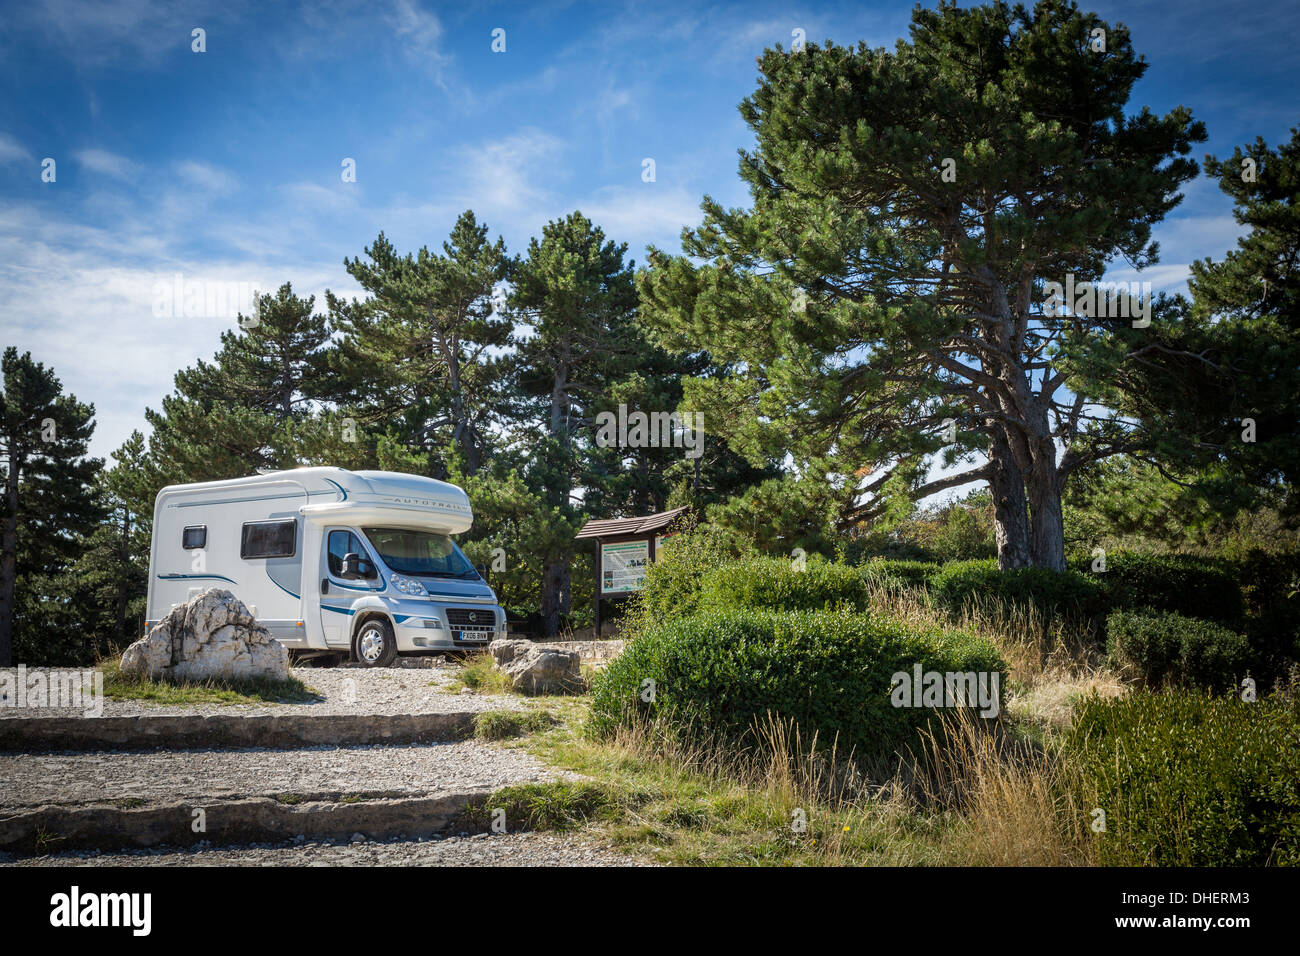 Motorhome parked in lay-by on road to summit of Mt Ventoux, France. - Stock Image